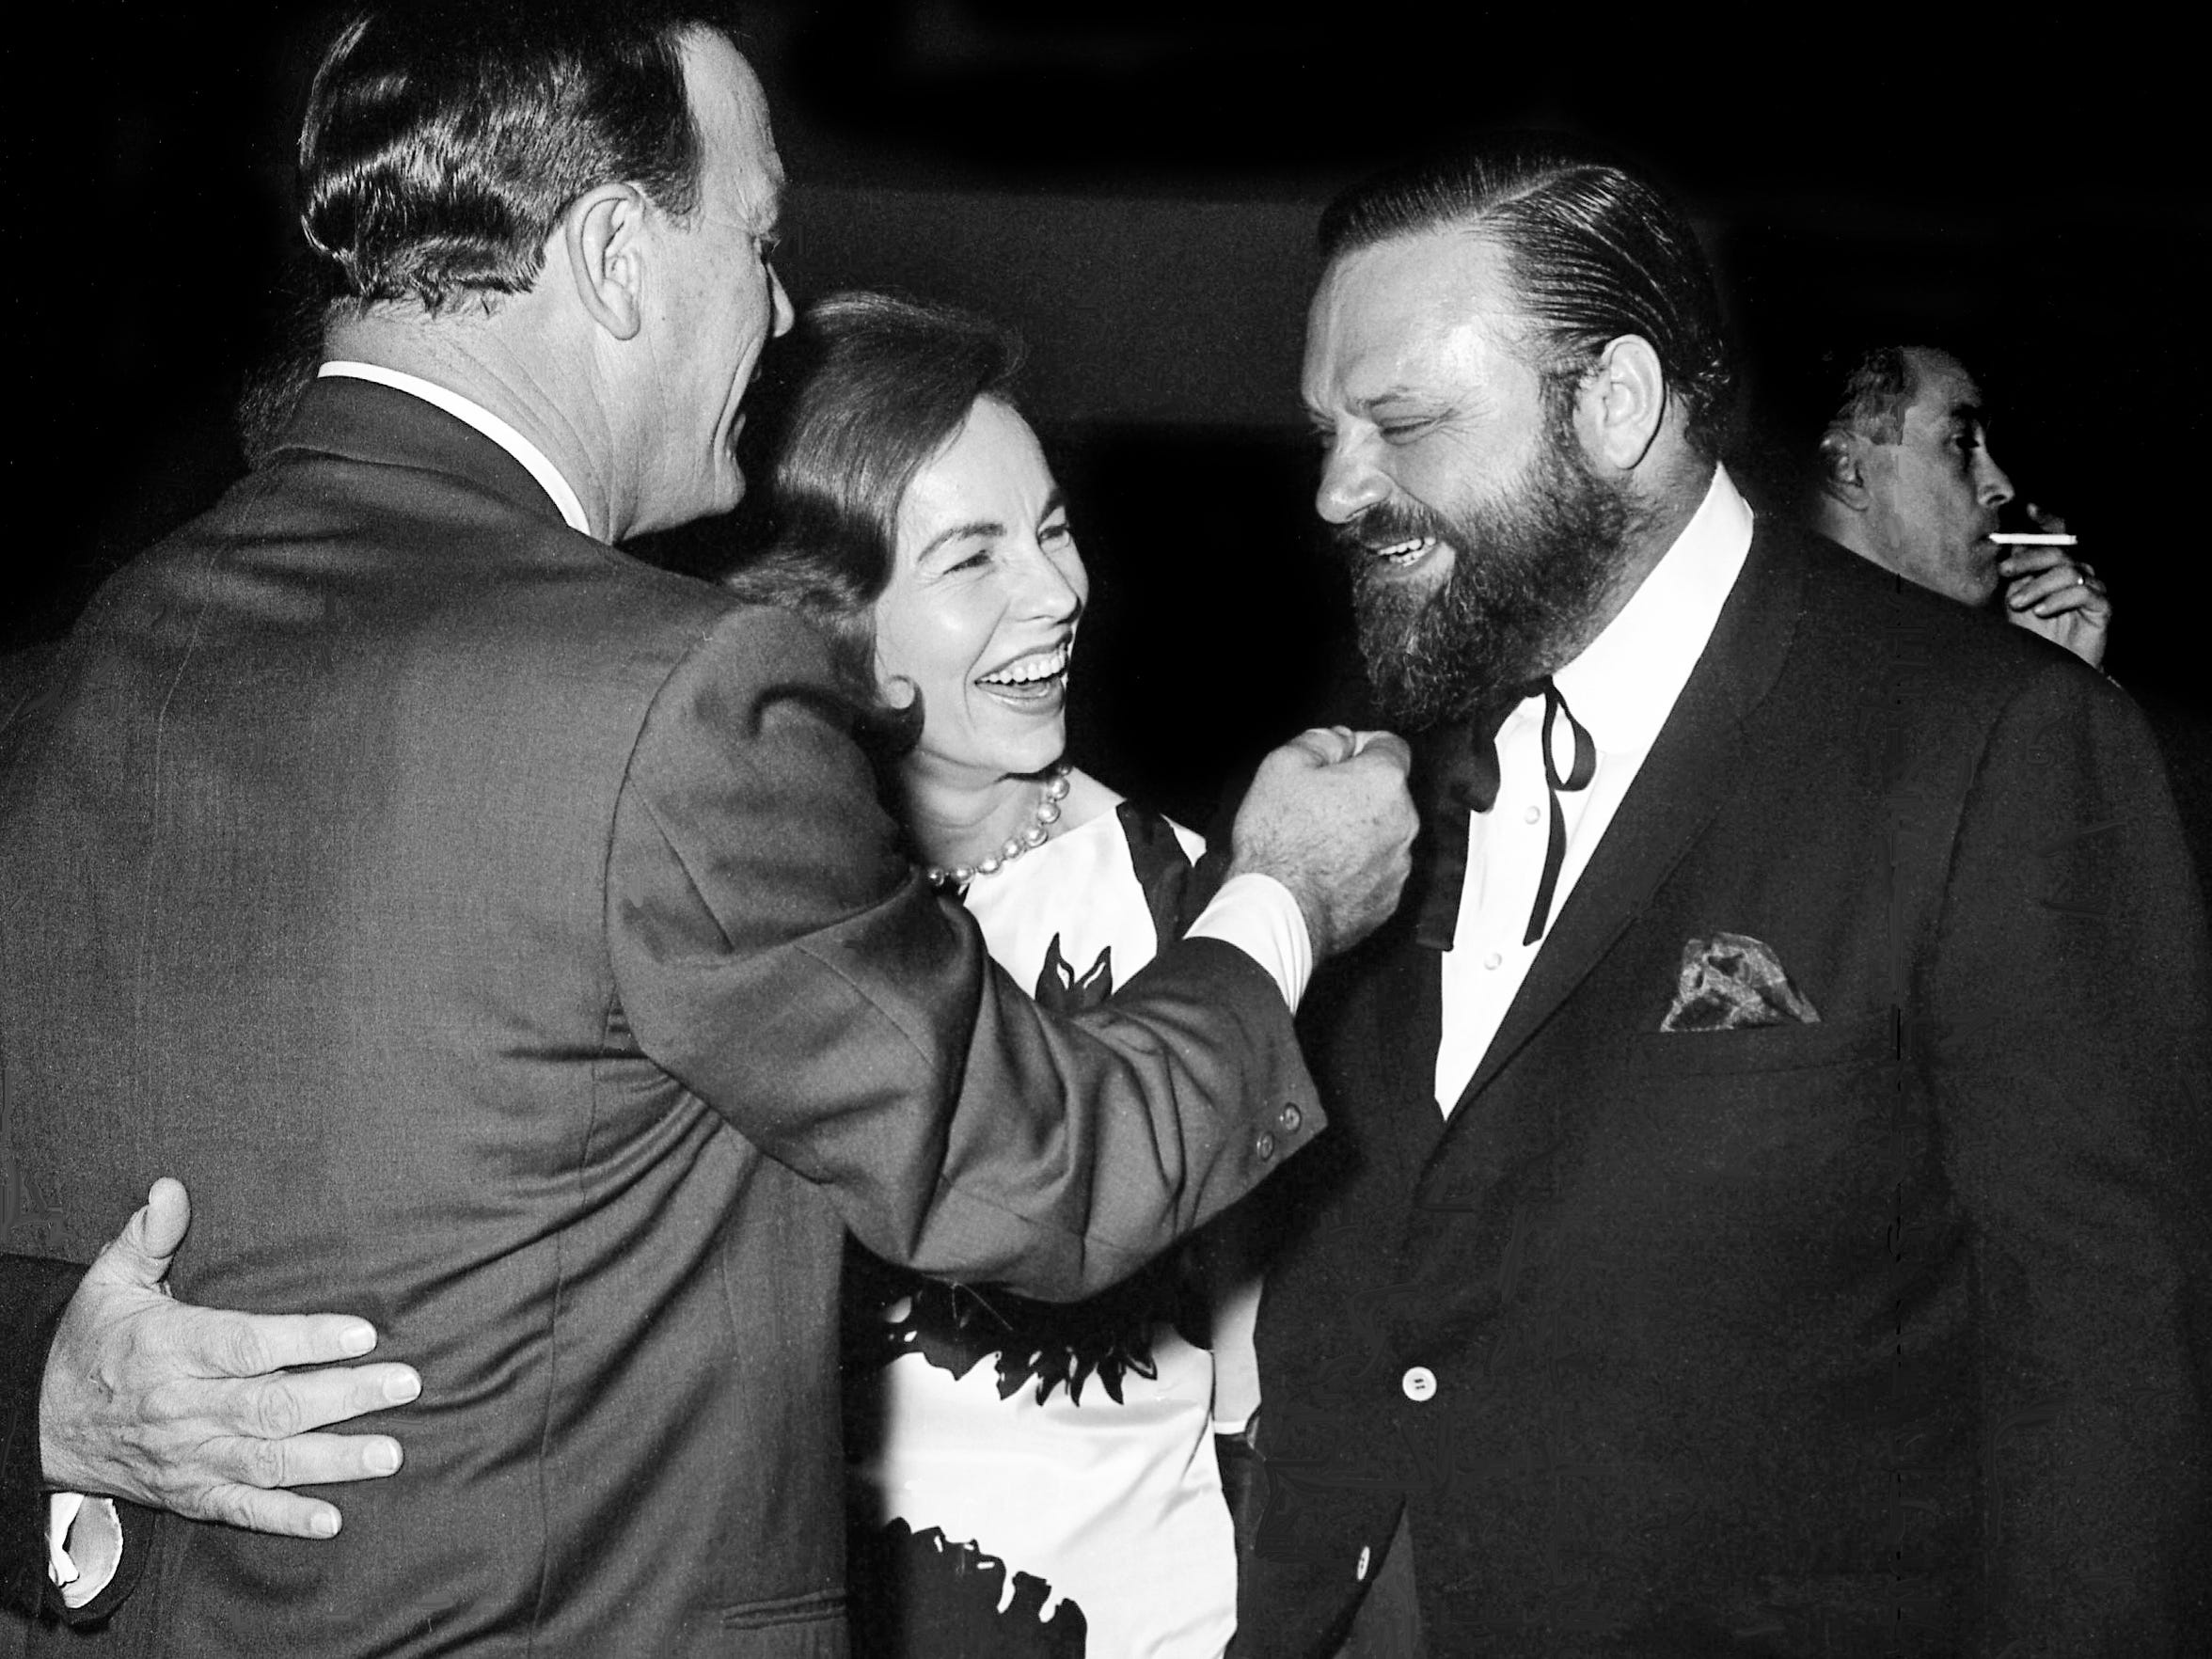 Eddy Arnold, left, Jo Walker of CMA, and trumpeter Al Hirt attended the grand opening of RCA Victor's new recording center March 29, 1965. Arnold is giving his fellow performer's beard a playful tug.